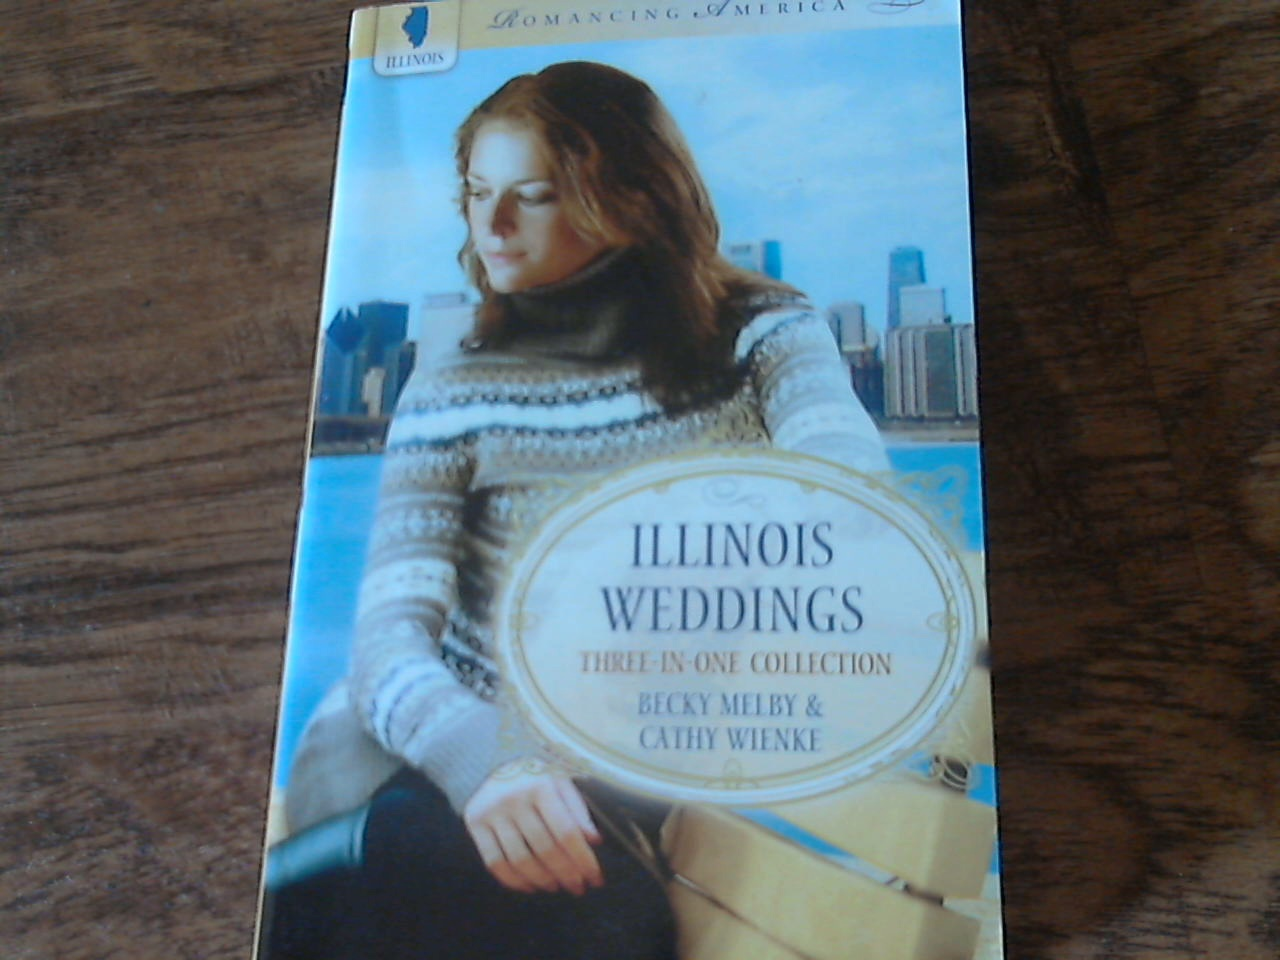 Primary image for Illinois Weddings By Becky Melby & Cathy Wienke (2010 Paperback)